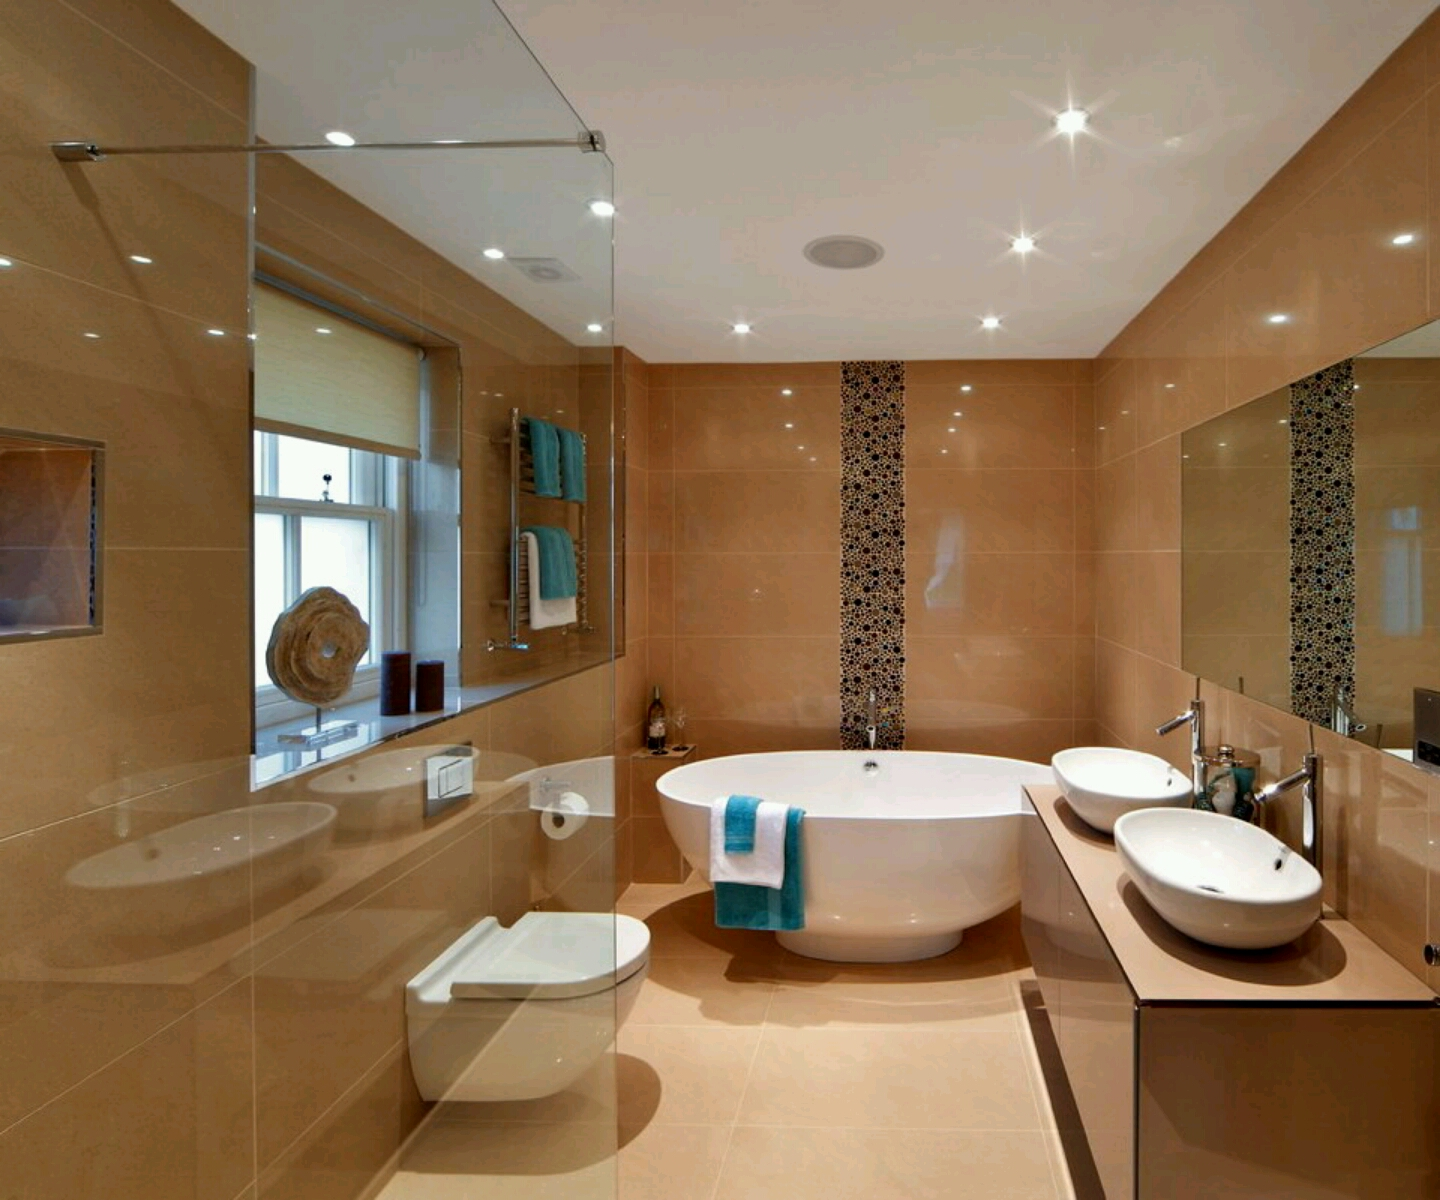 New home designs latest luxury modern bathrooms designs for Luxury bathroom designs